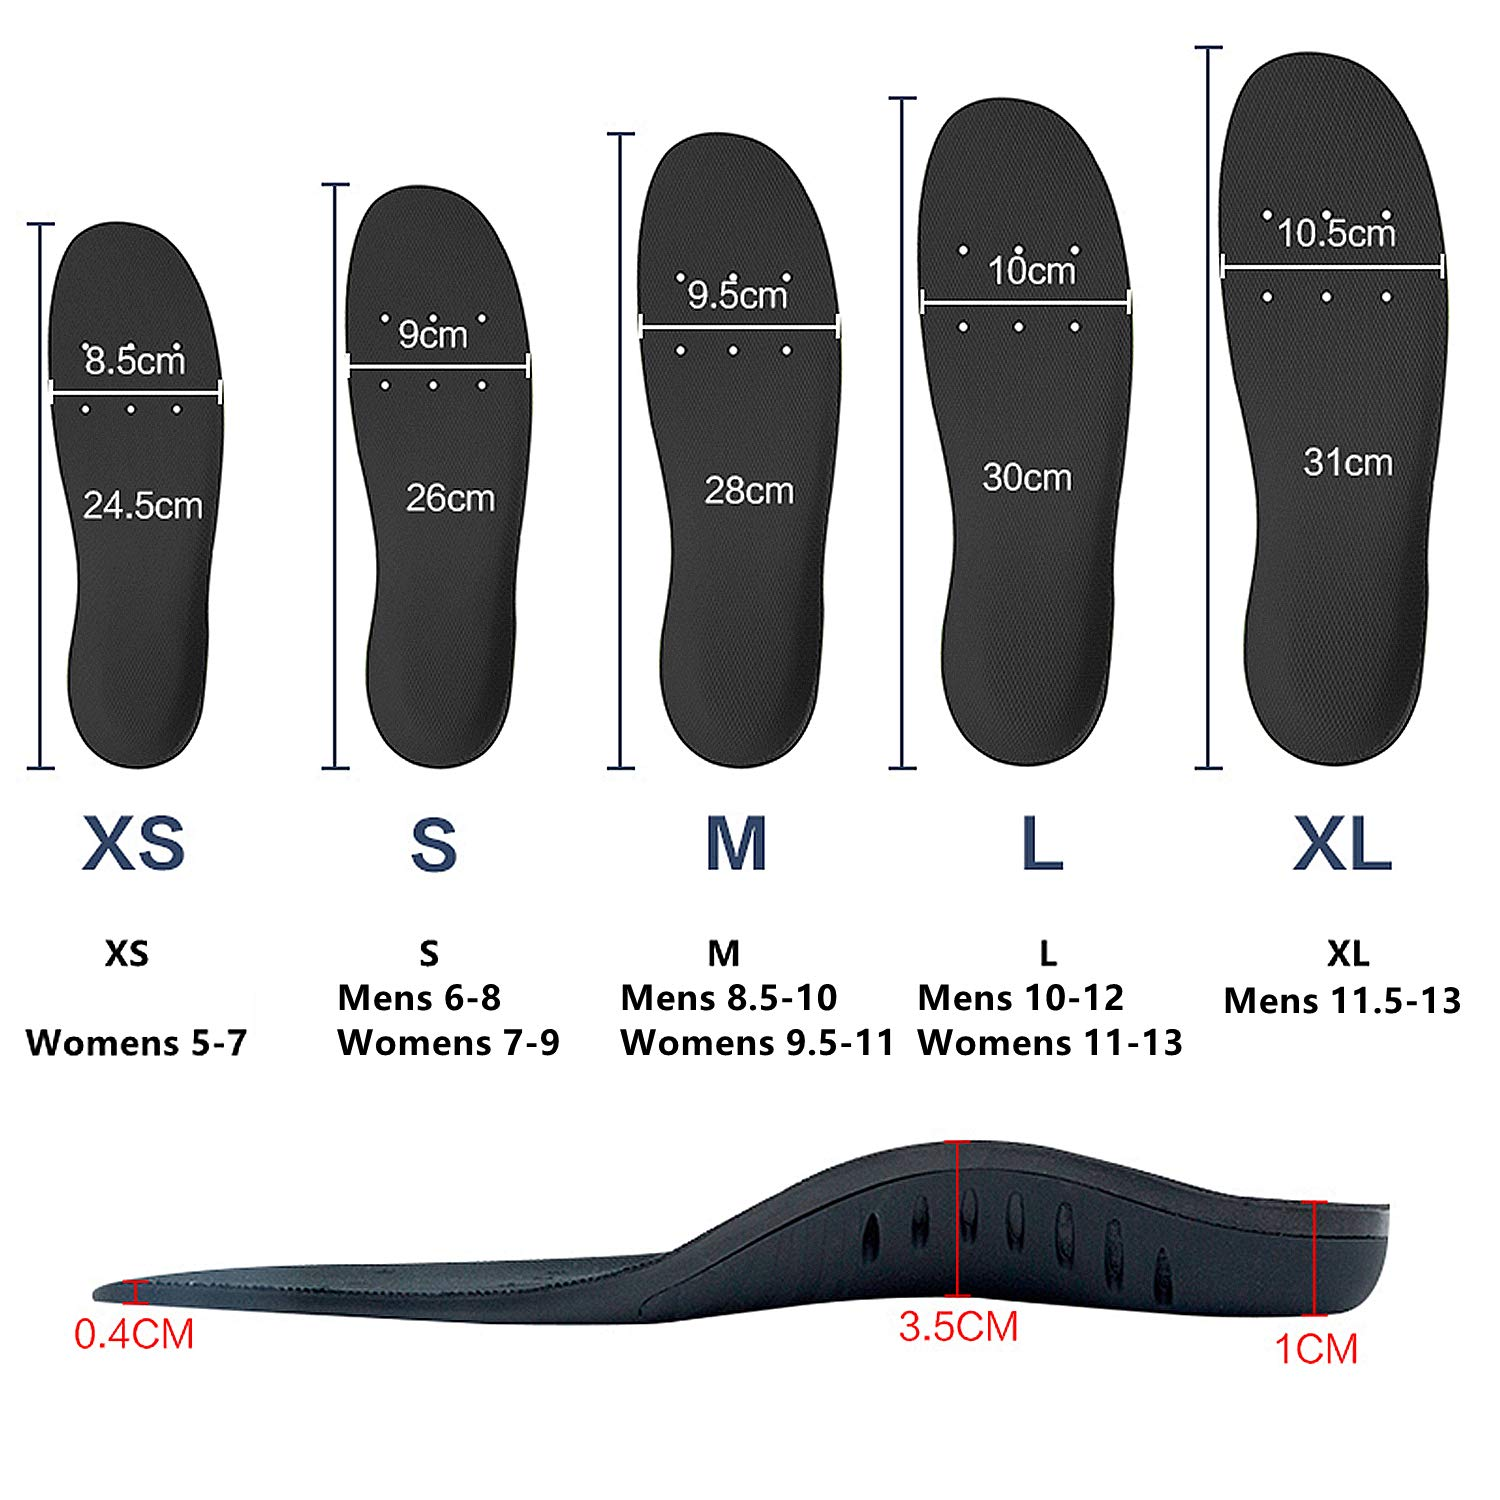 Hyperspace Sports Insole for Gel High Arch Support Shoe Inserts Plantar Fasciitis Orthotic Inserts Maximum Comfort and Shock Absorption for Flat Feet and Injury Prevention (Black XL) by Hyperspace (Image #8)